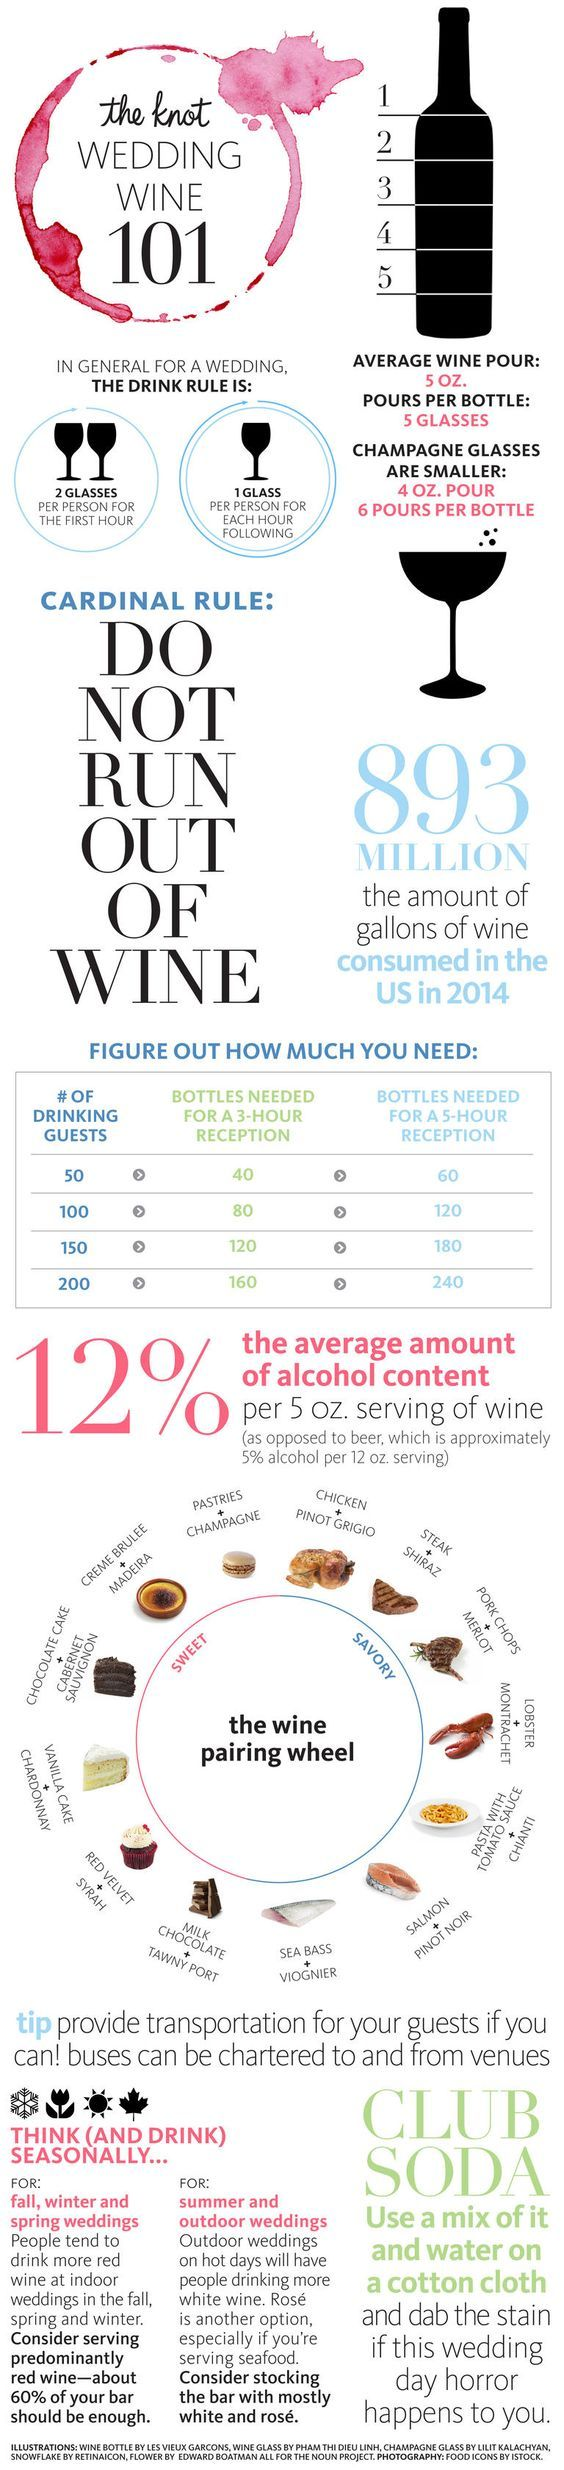 If you're planning to serve wine at your wedding, here are some things you'll want to know! | infographic featured on TheKnot.com